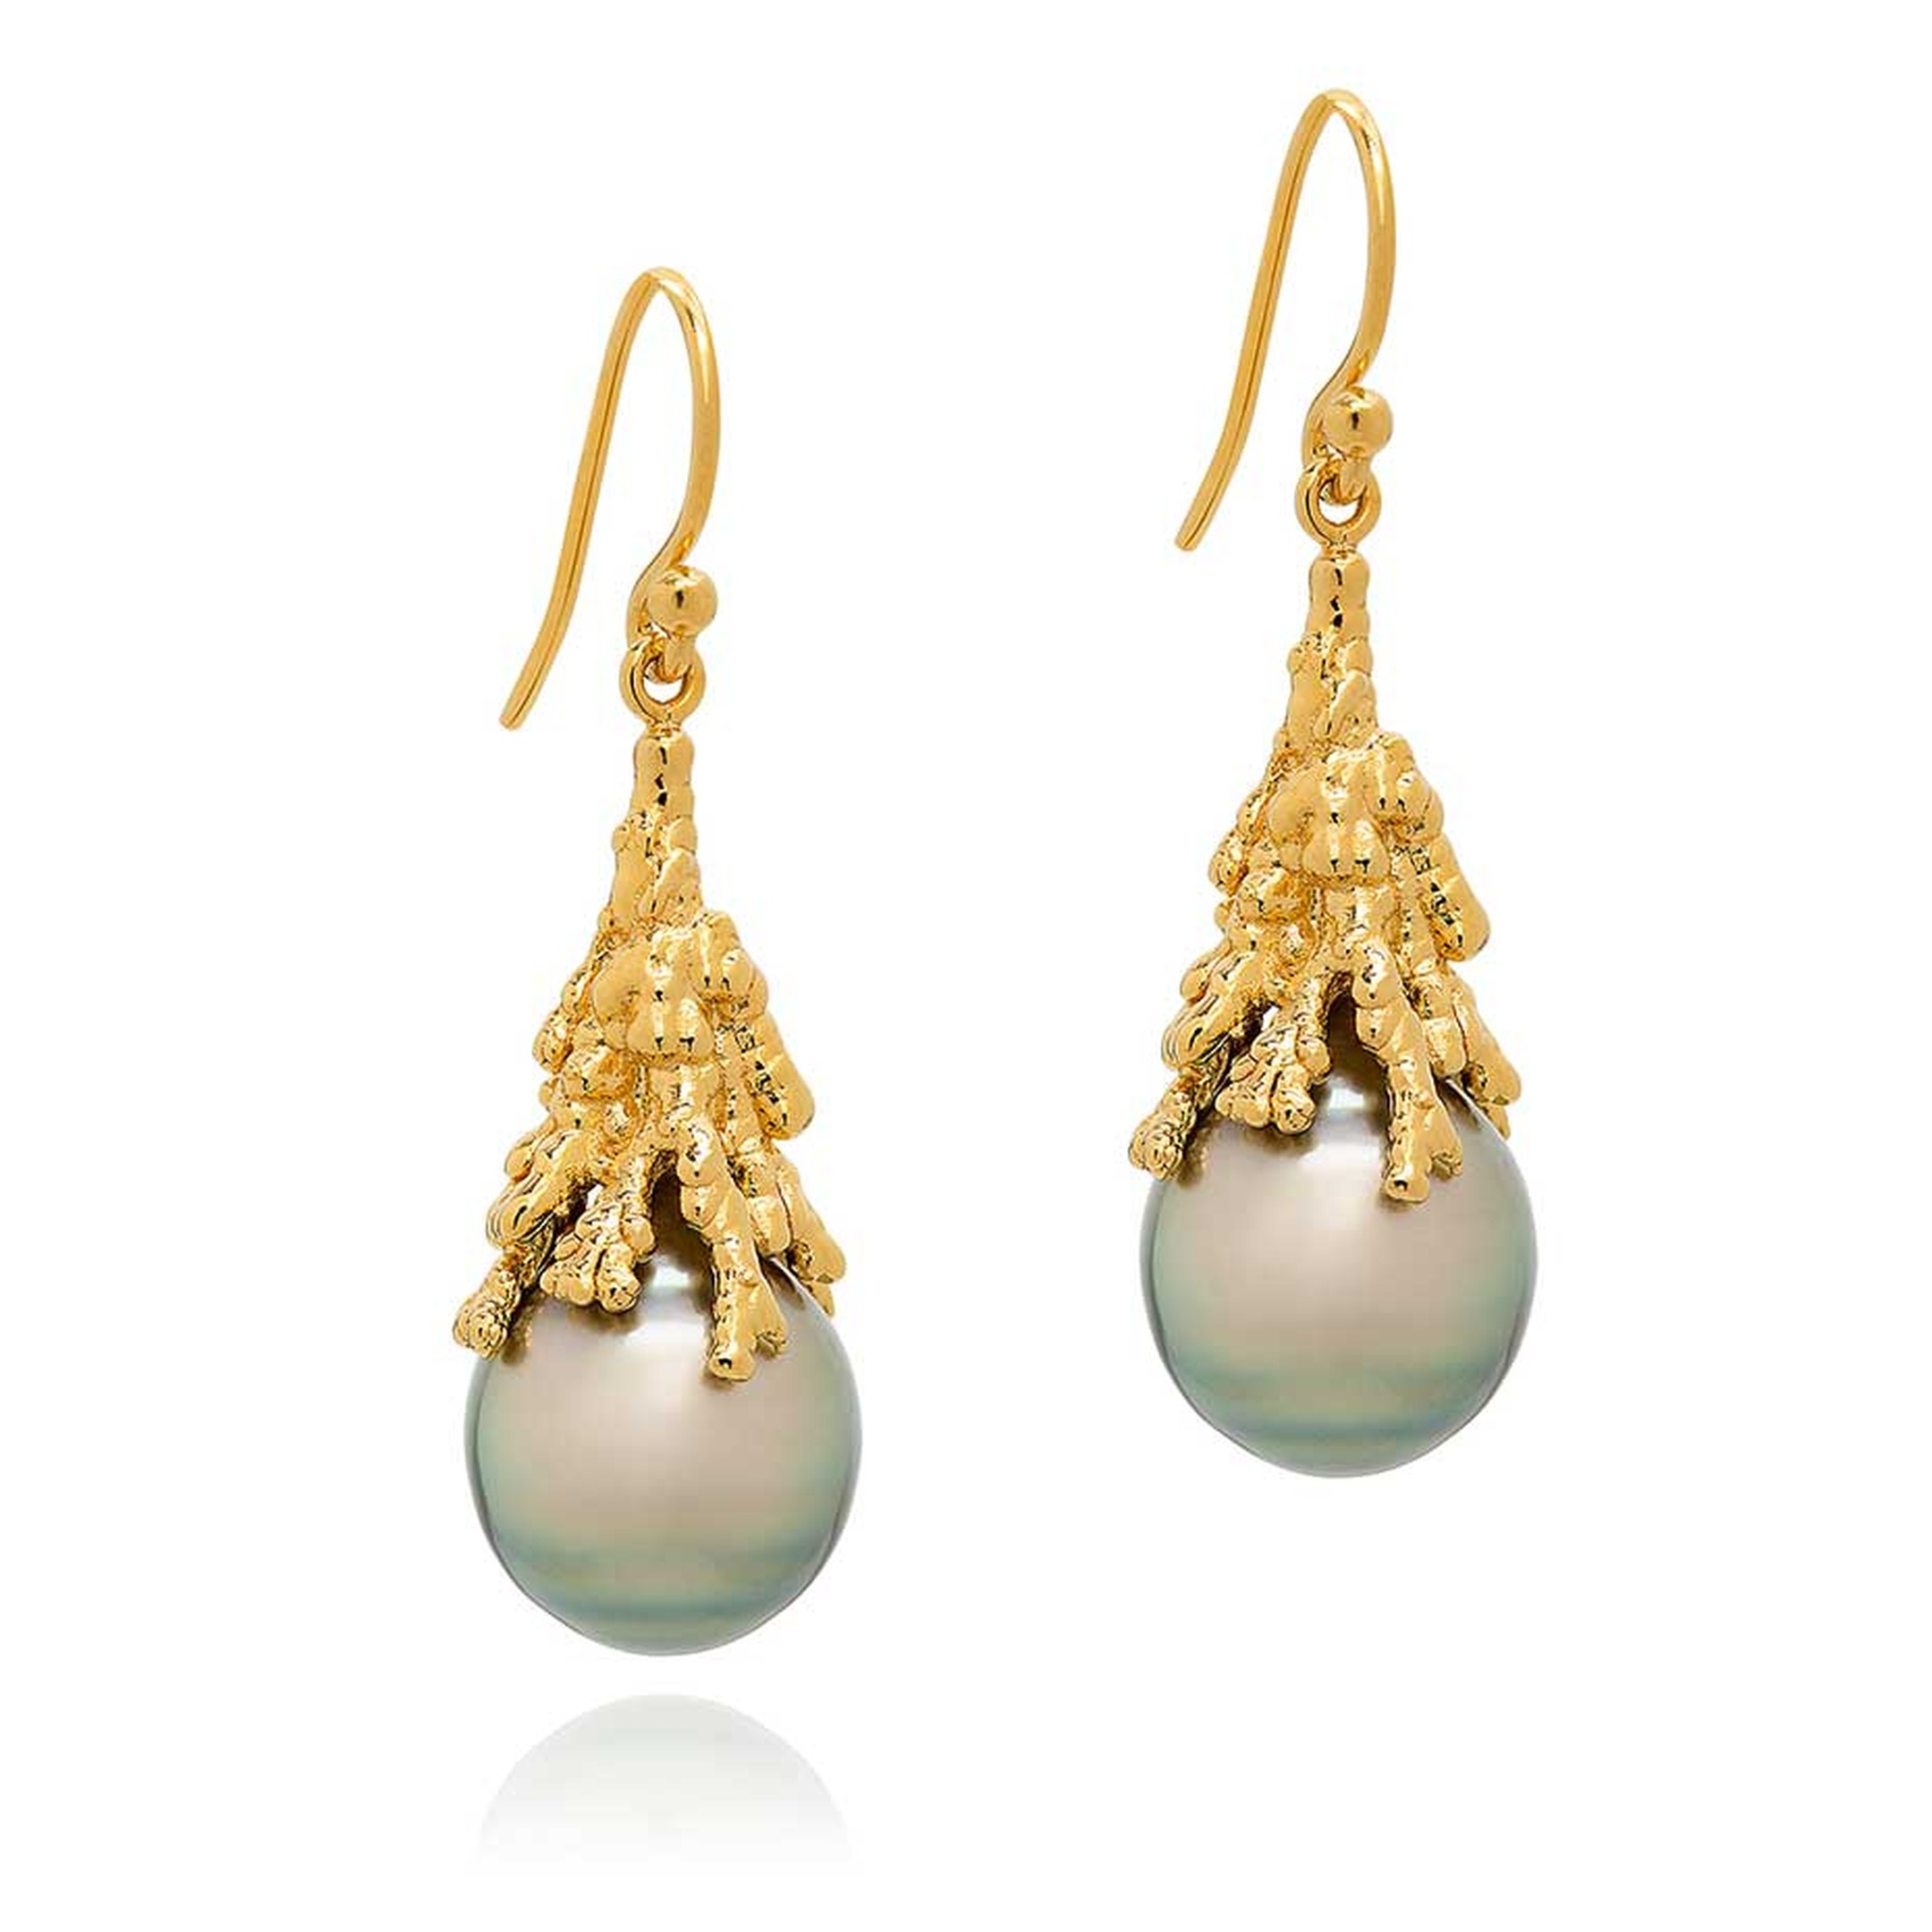 Ornella Iannuzzi joins the pioneering British designers who make up Rock Vault, which will be showing once again at the Couture Show Las Vegas. She will be debuting her Coralline Reef earrings in gold with Tahitian pearls